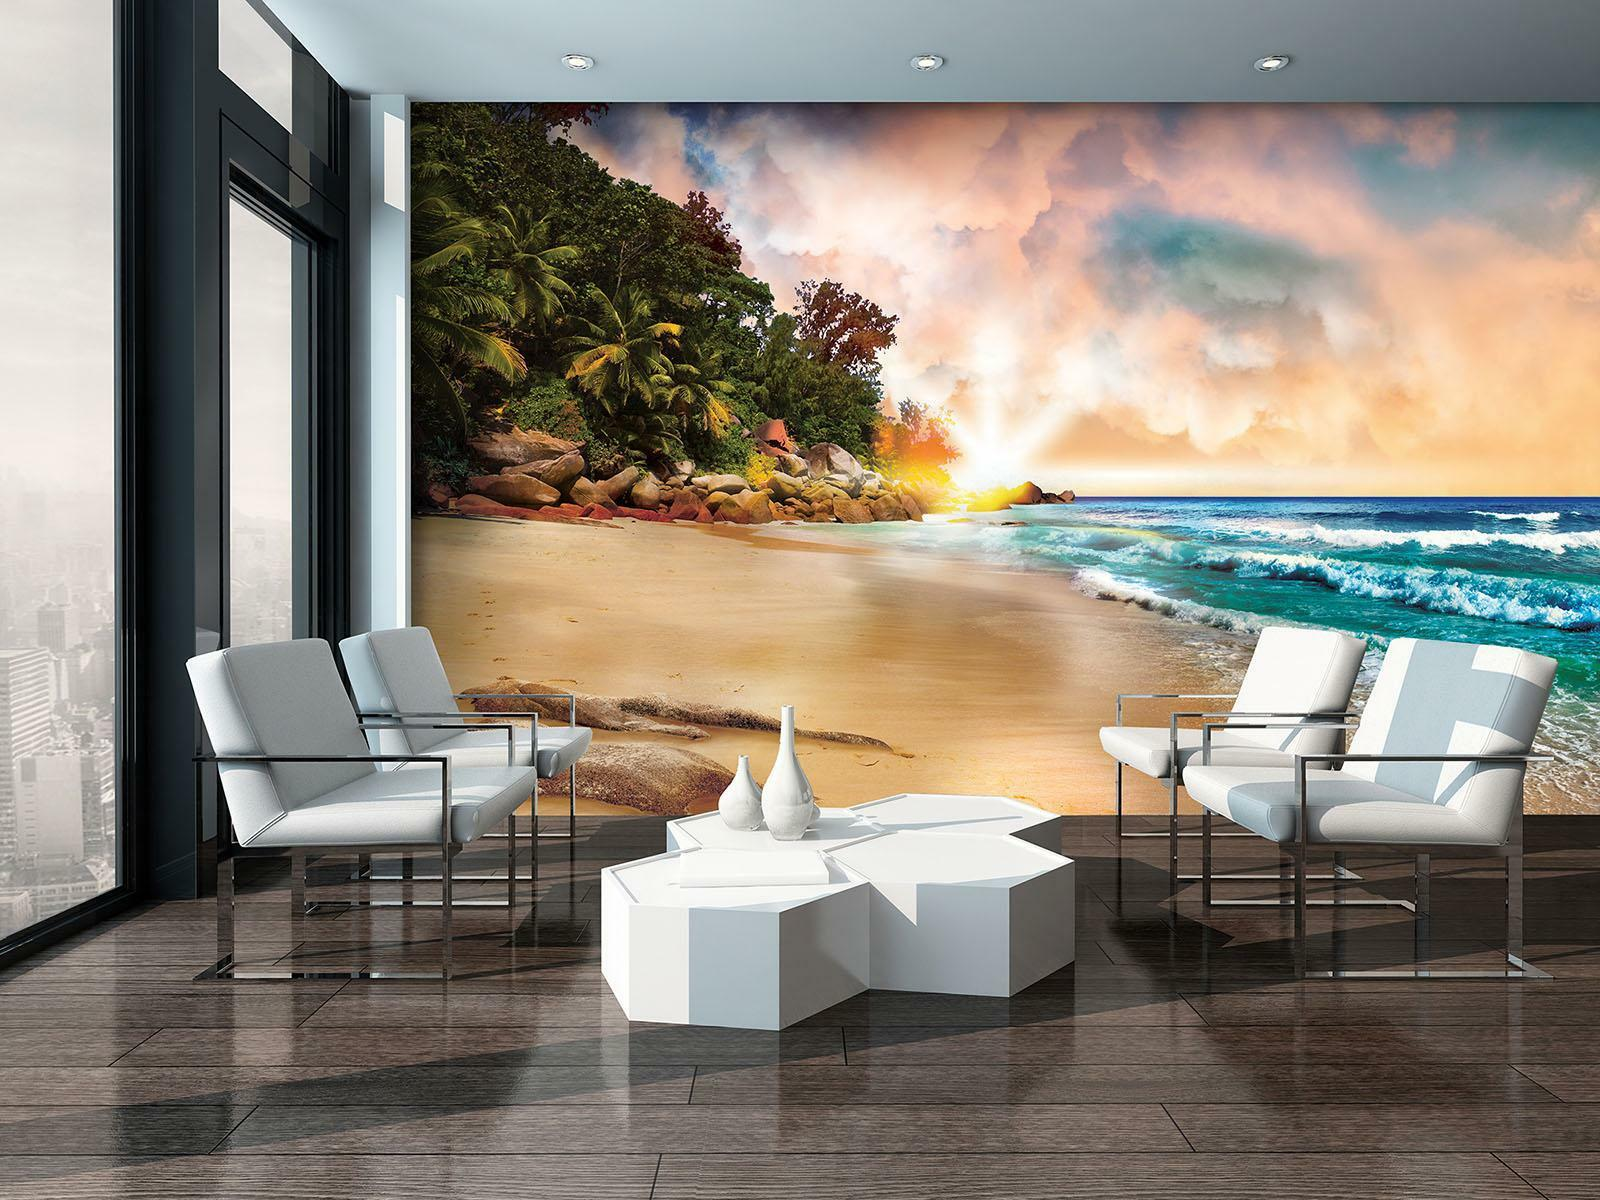 Photo Wallpaper Mural Non-woven 10897_VEN Sunset Beach Sand Landscape Sky Horizo